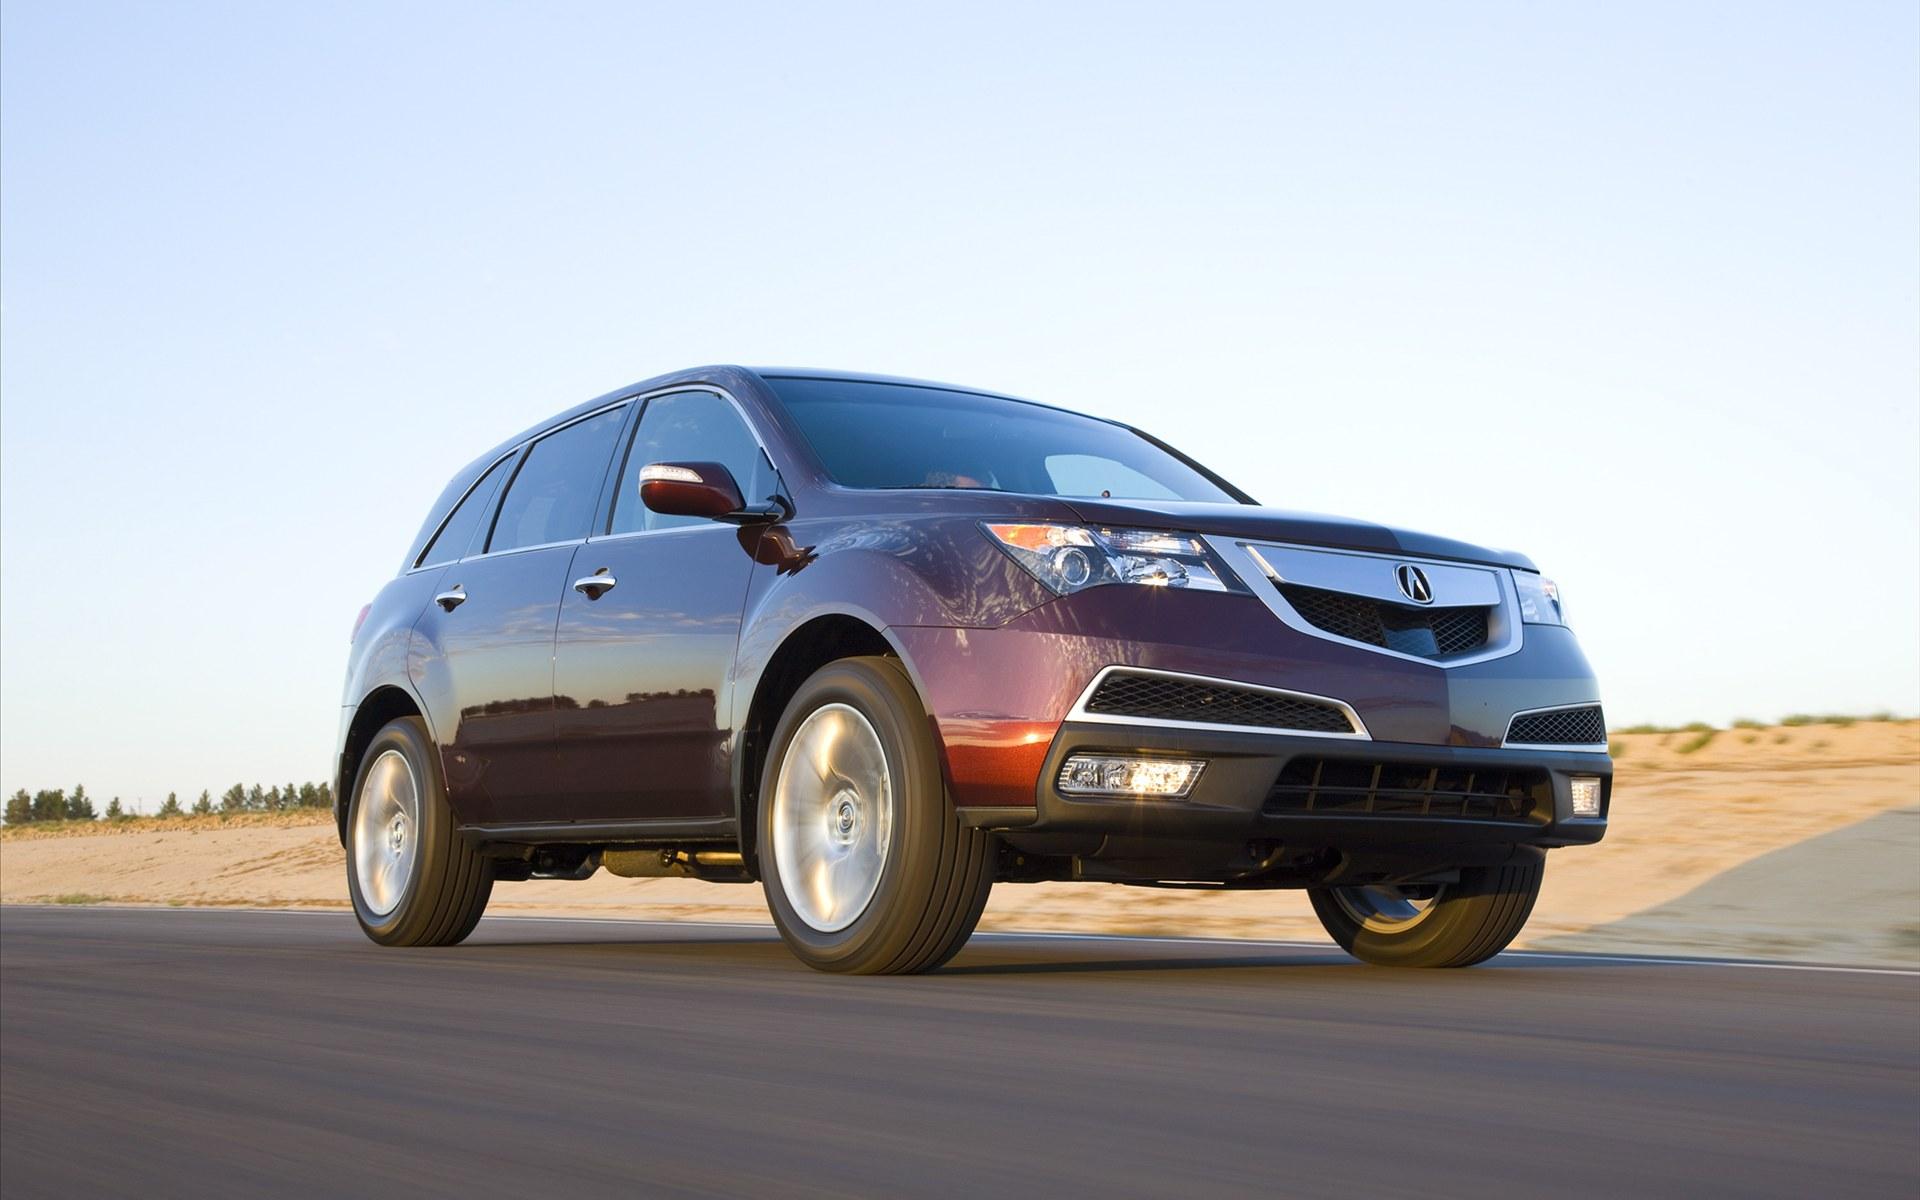 ... Acura MDX together with Acura Service Bay Area Acura Acura Cars 827